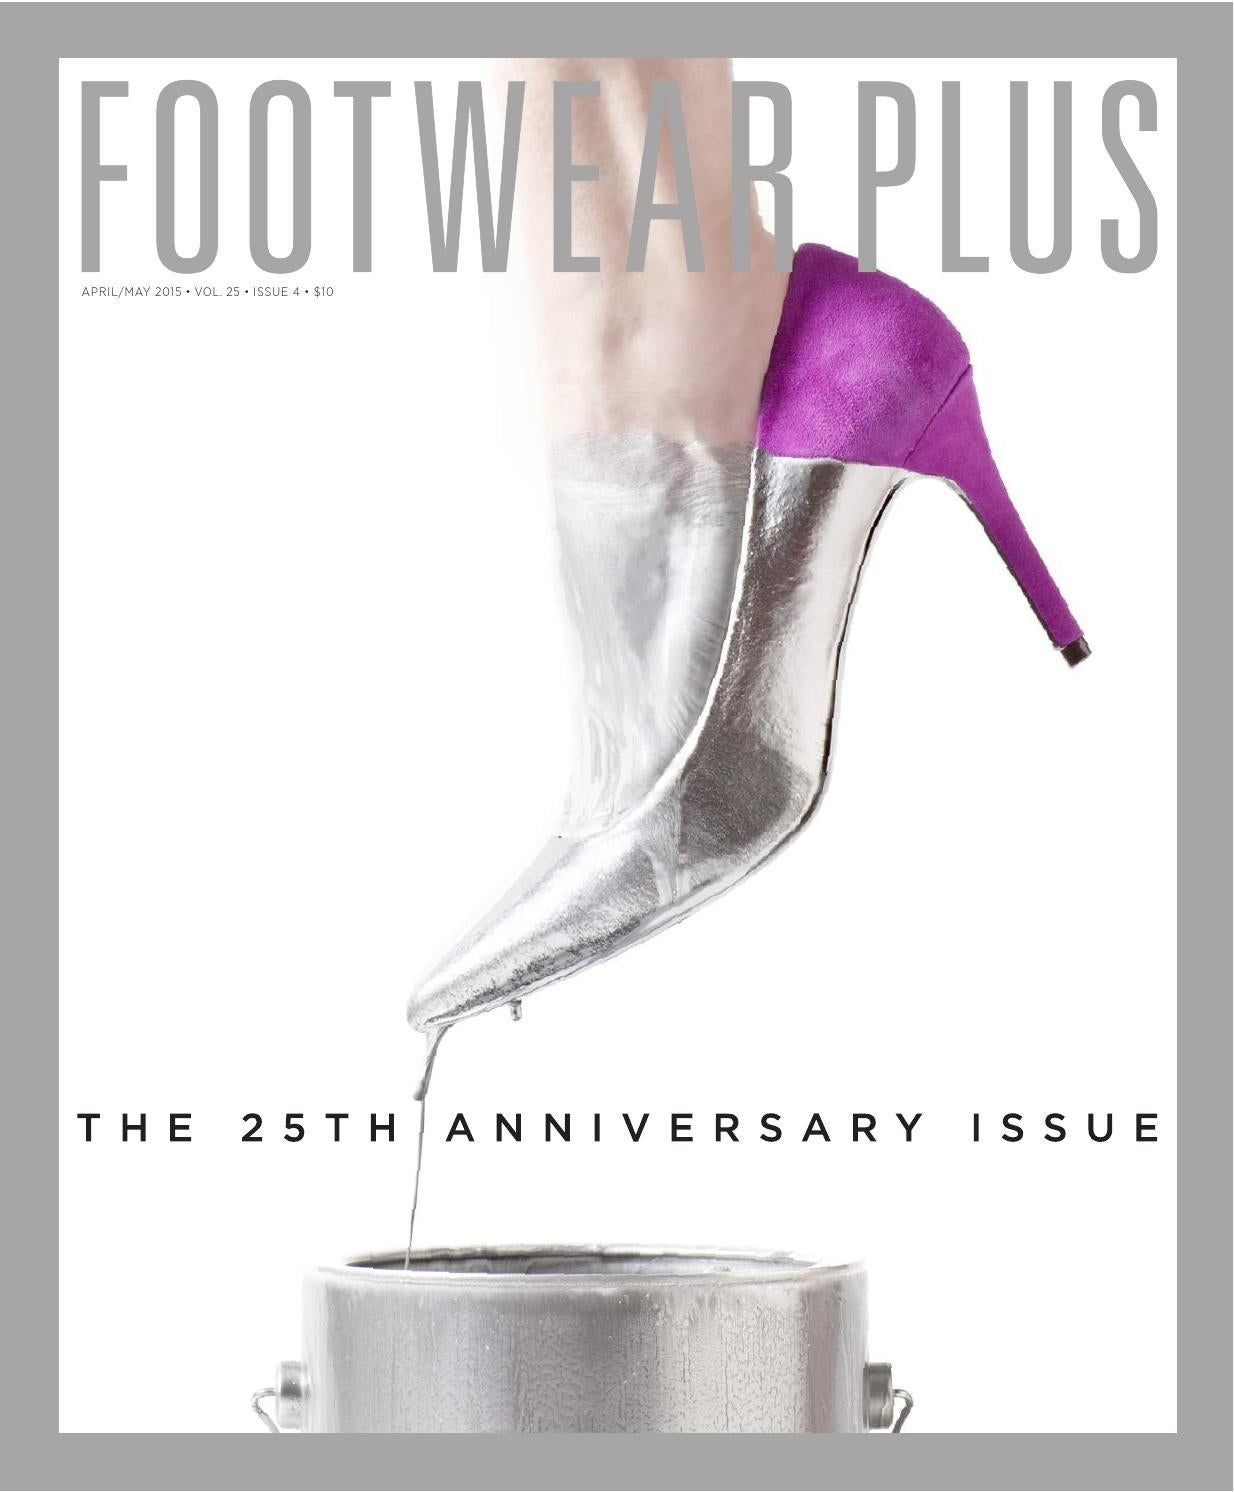 cef41d5d1ee Footwear Plus | April/May 2015 by 9Threads - issuu